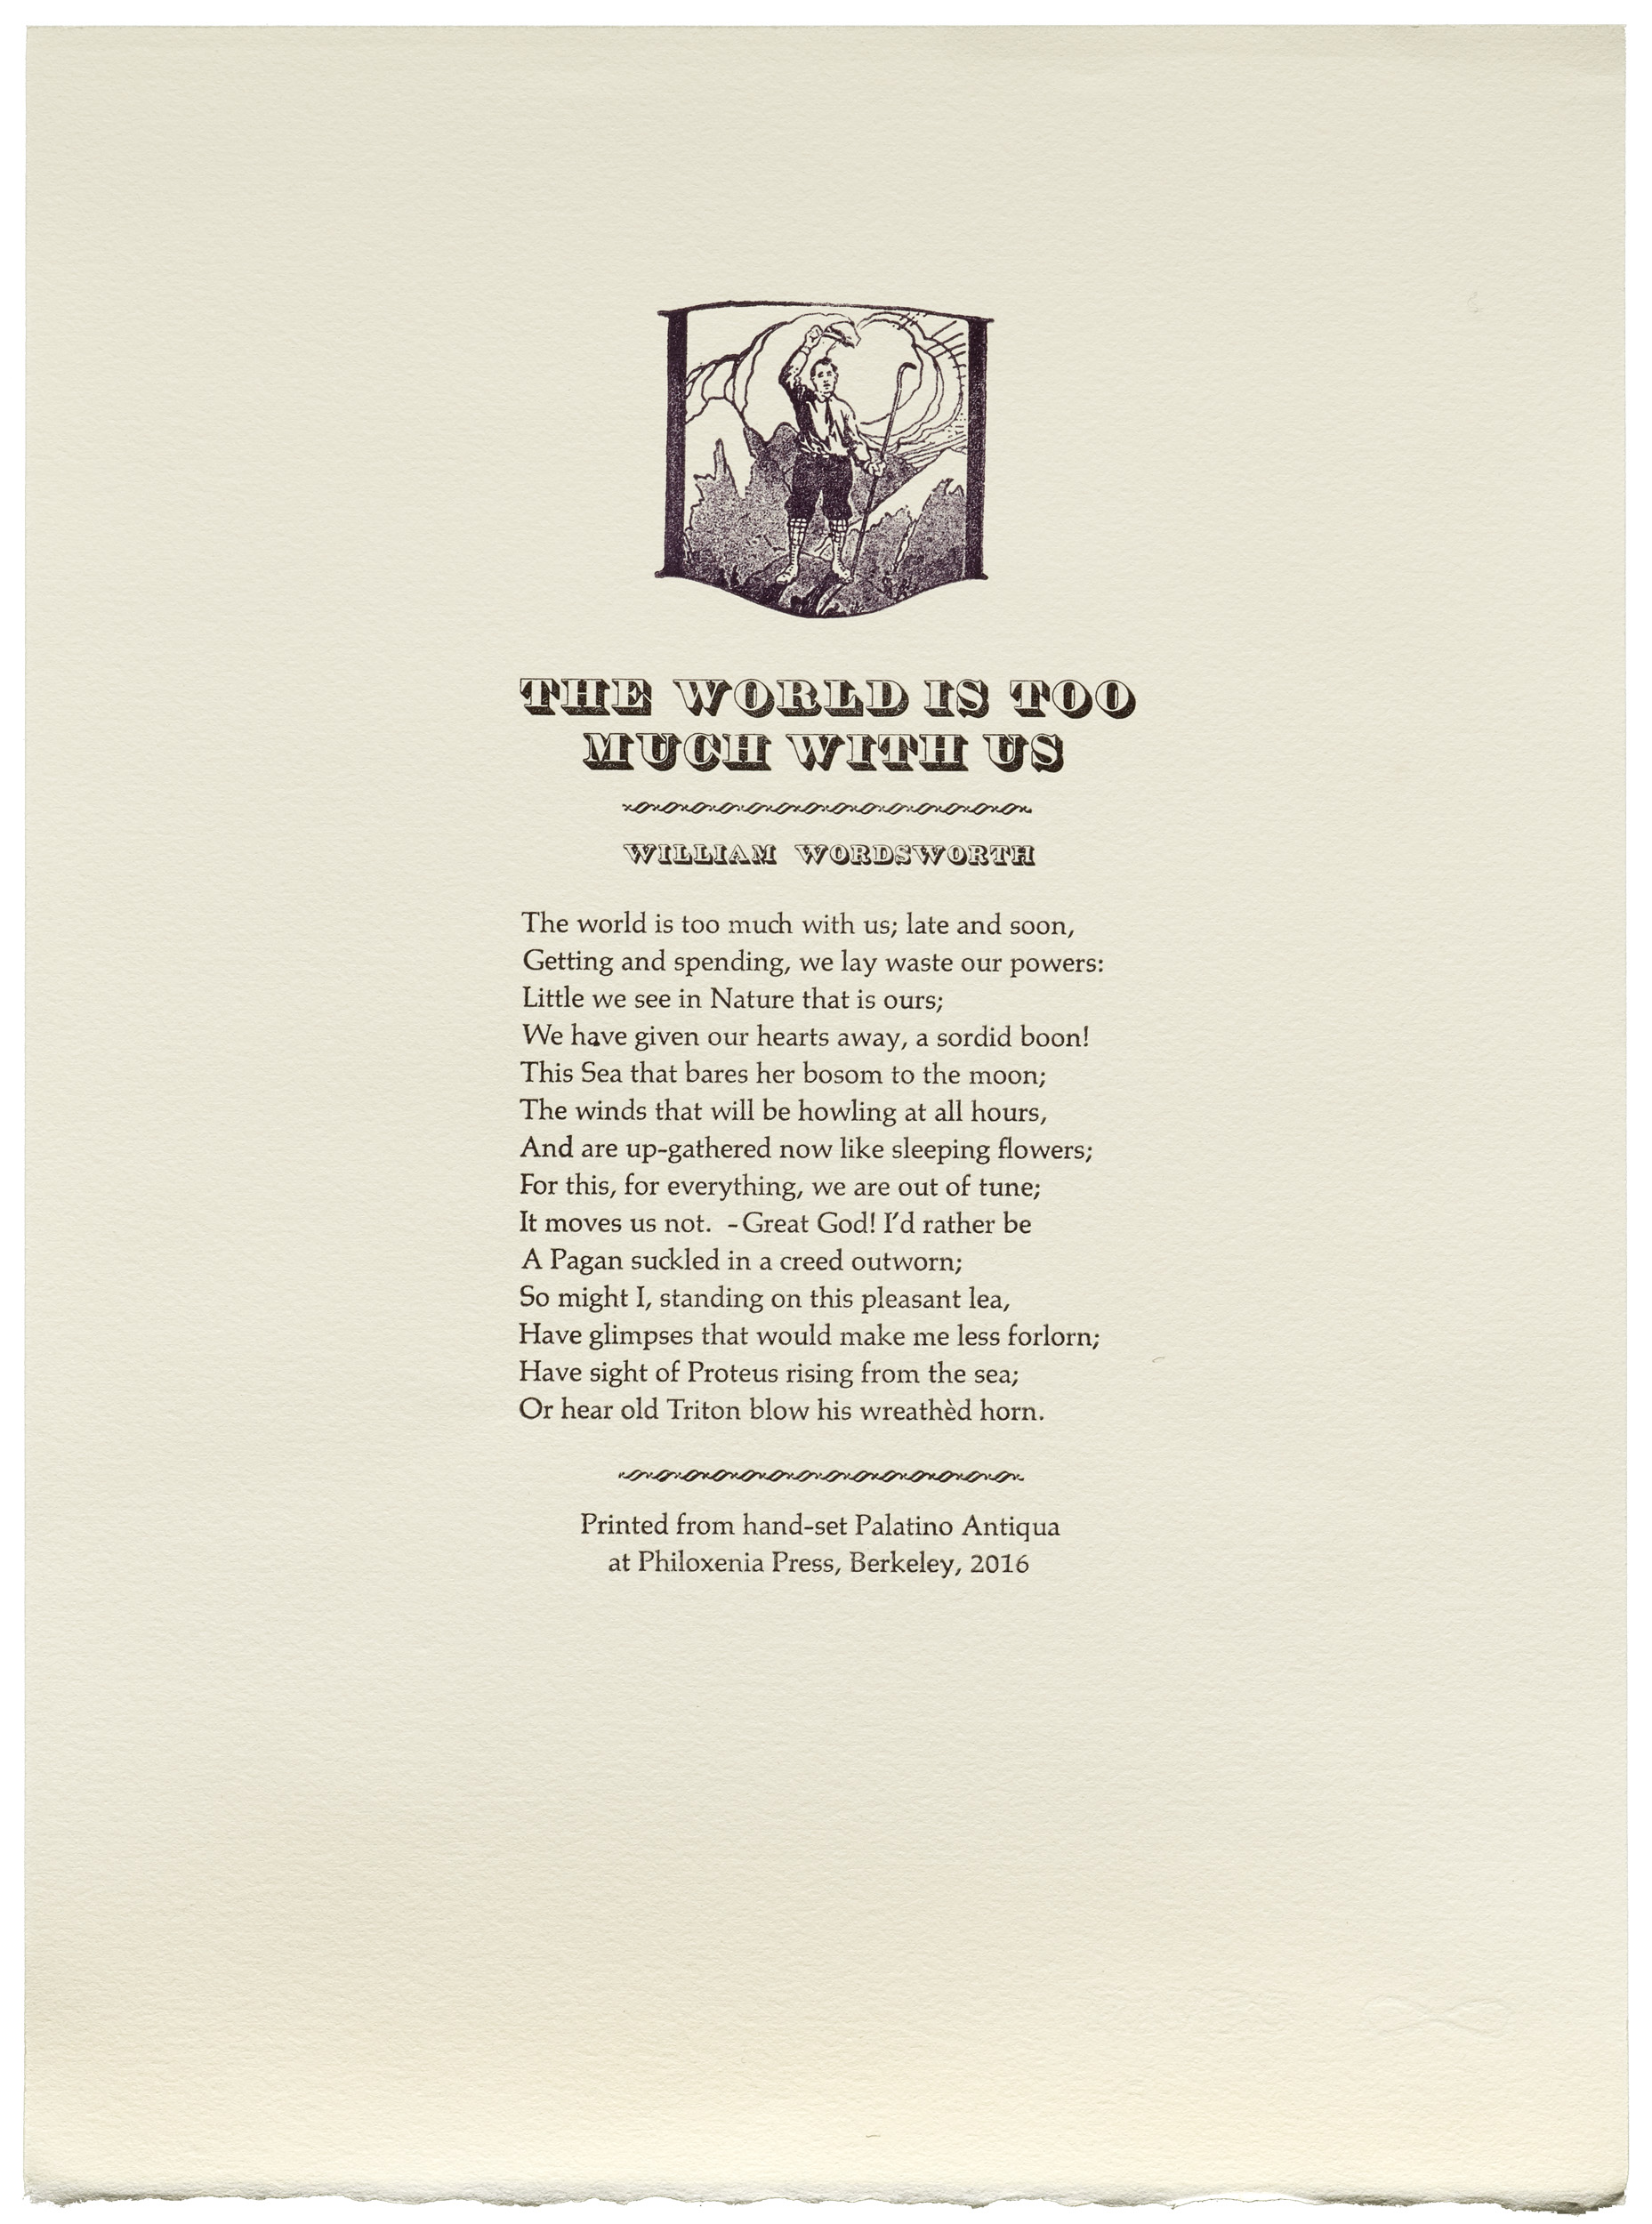 Broadside. William Wordsworth. The World is too much with us. 12 point Palatino, Hermann Zapf with 16 point Bauer Verdi & 24 point Long Primer Shaded. Size 9.5 x 12.